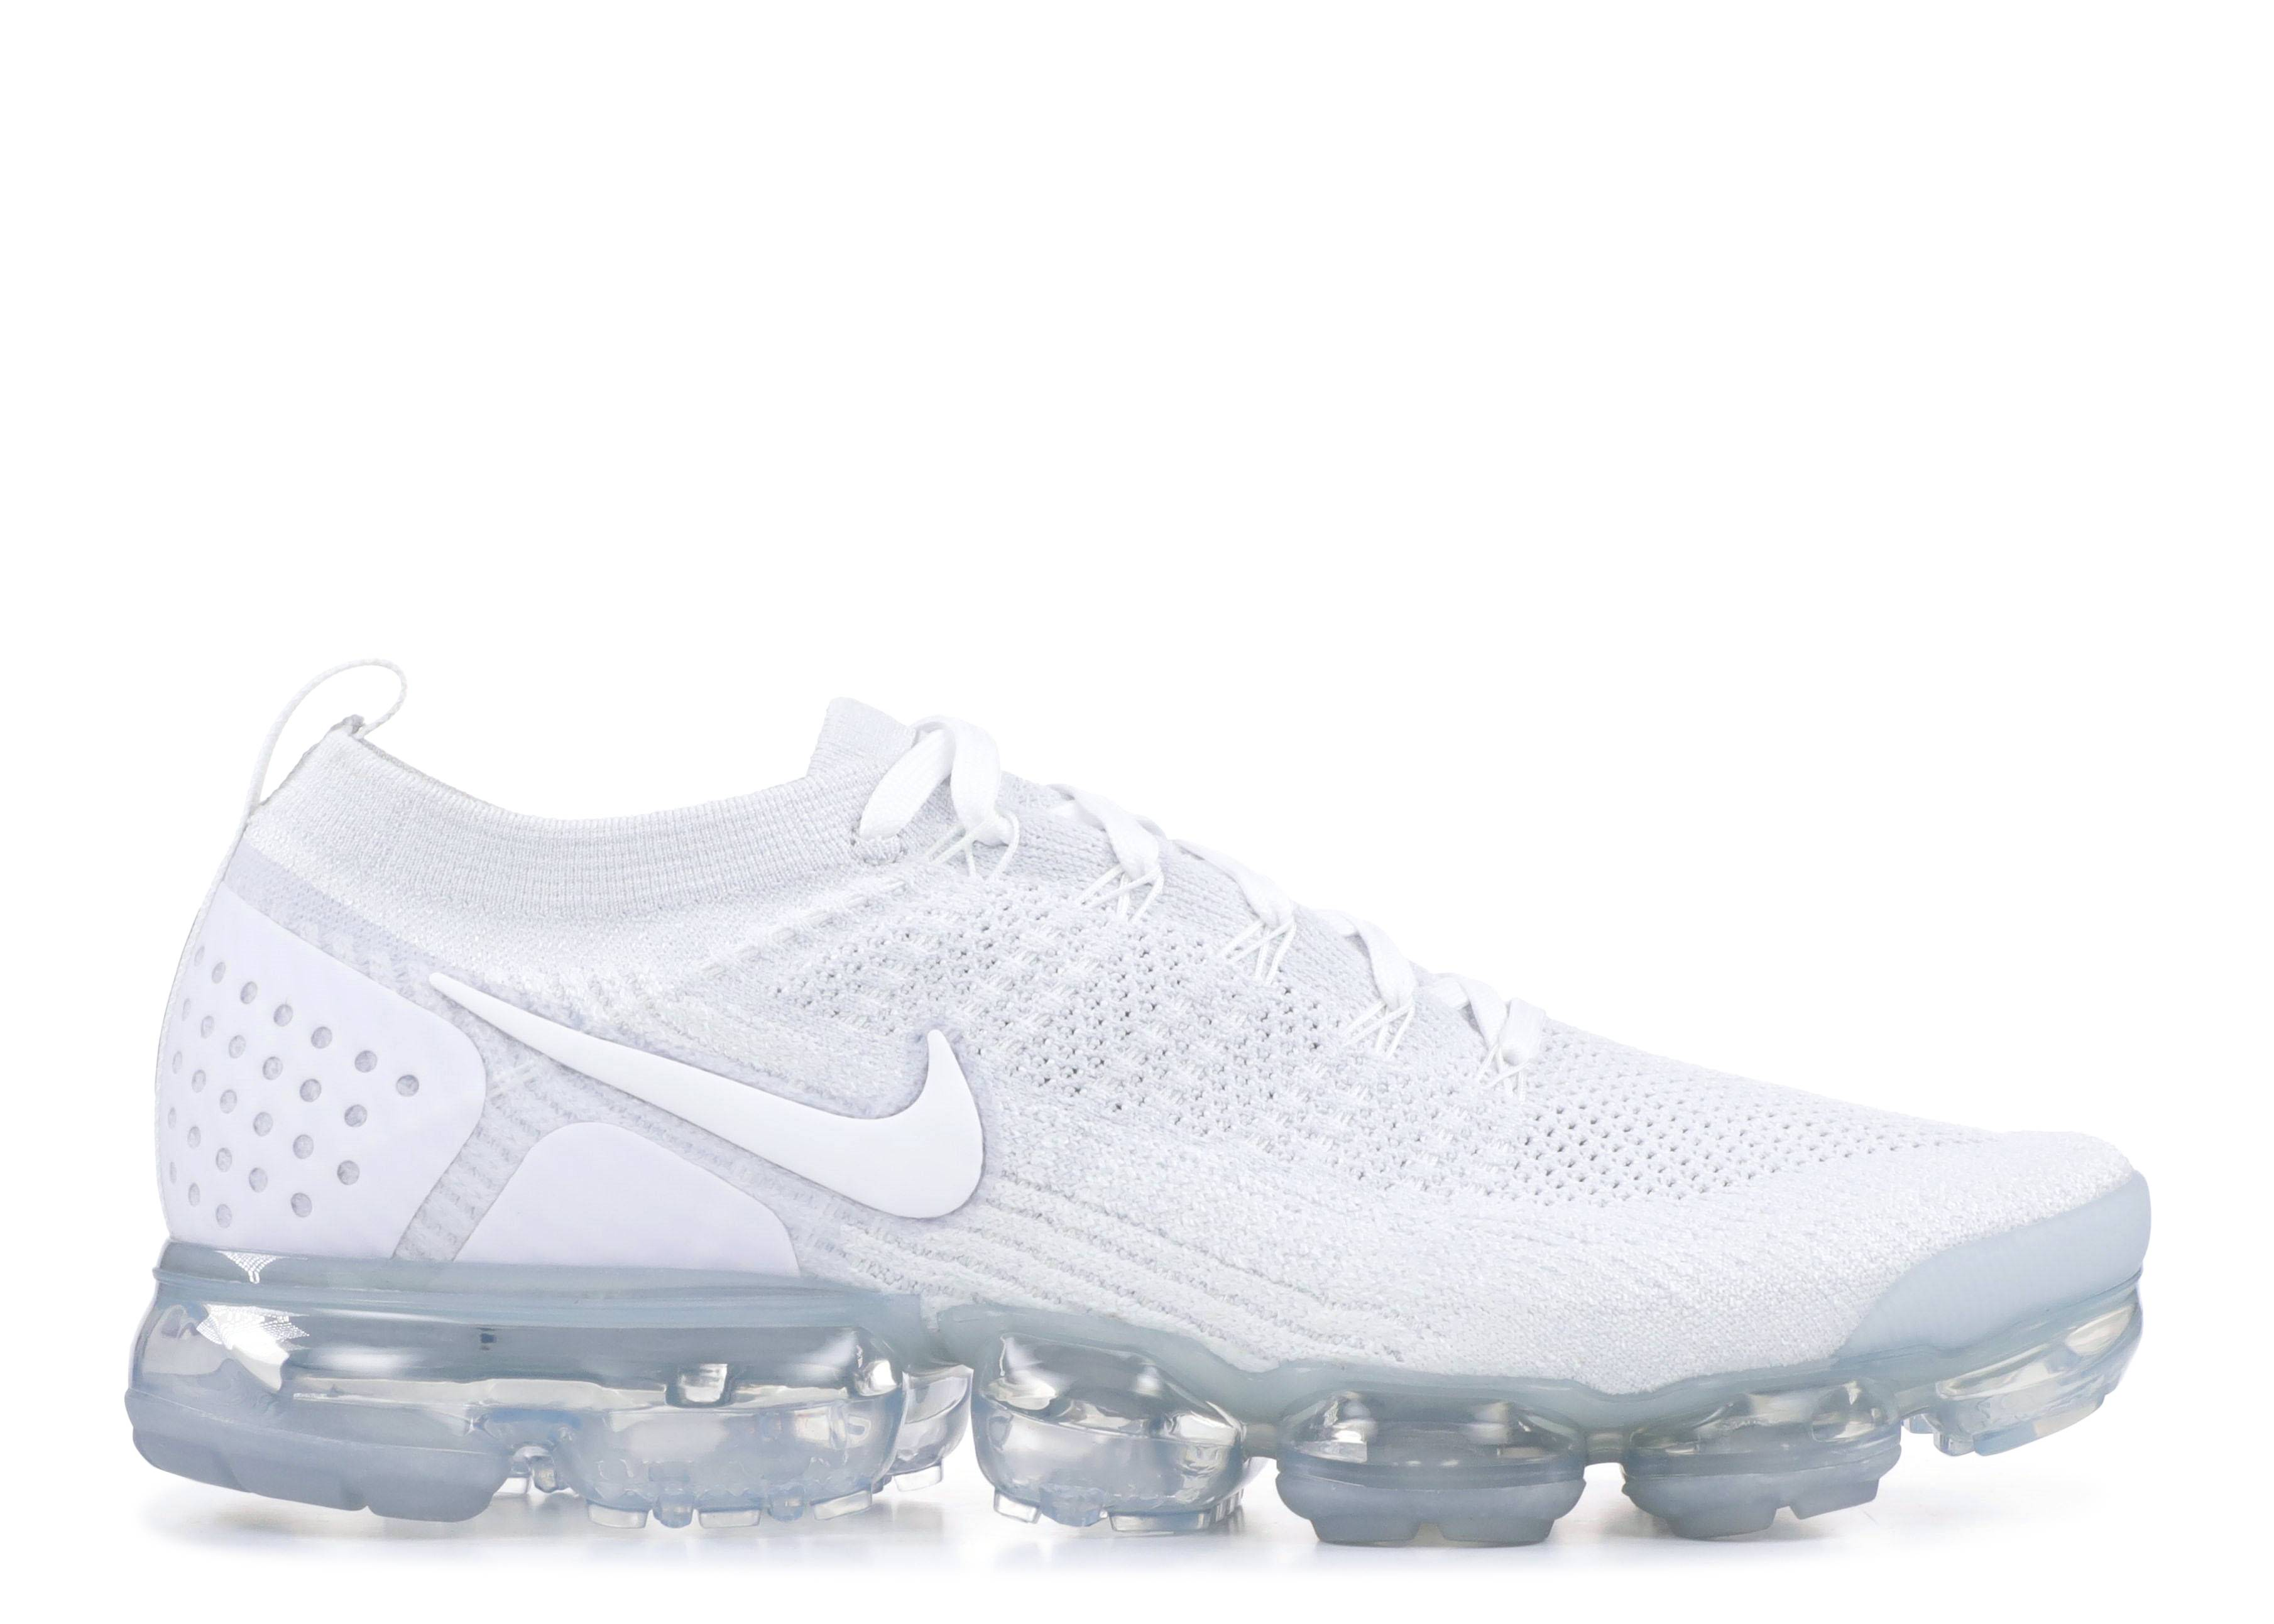 68c93933f4ffd Air Vapormax Flyknit 2 - Nike - 942842 100 - white white-pure ...